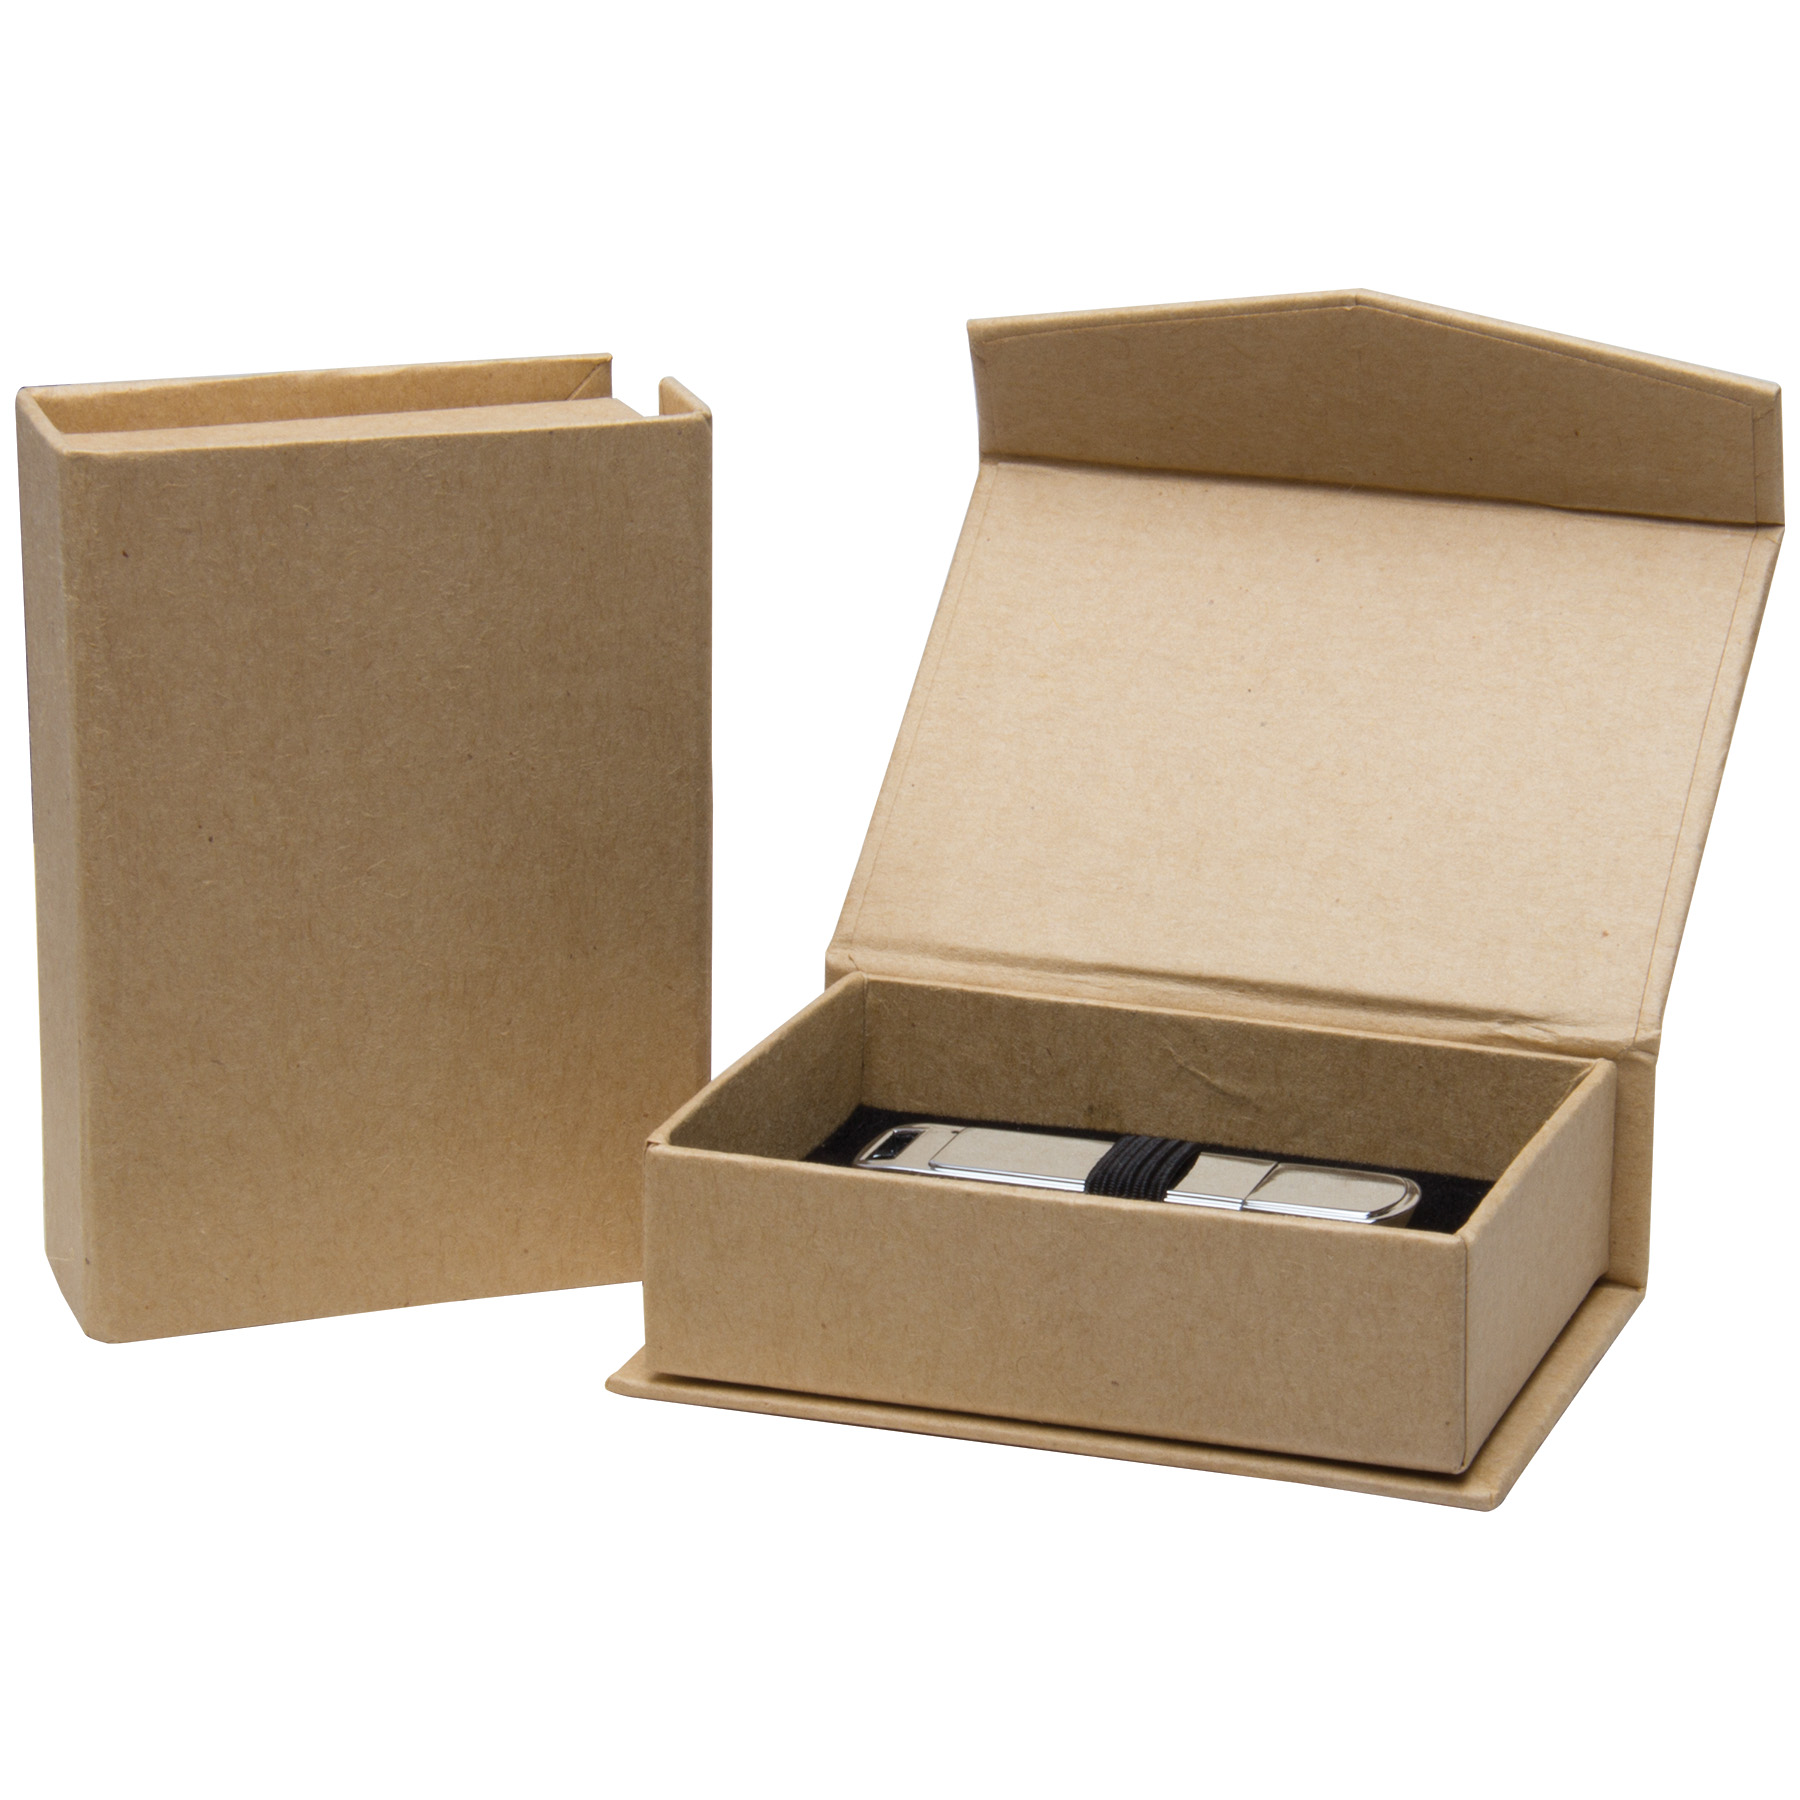 Kraft flash drive box neil enterprises for Mercedes benz flash drive with box